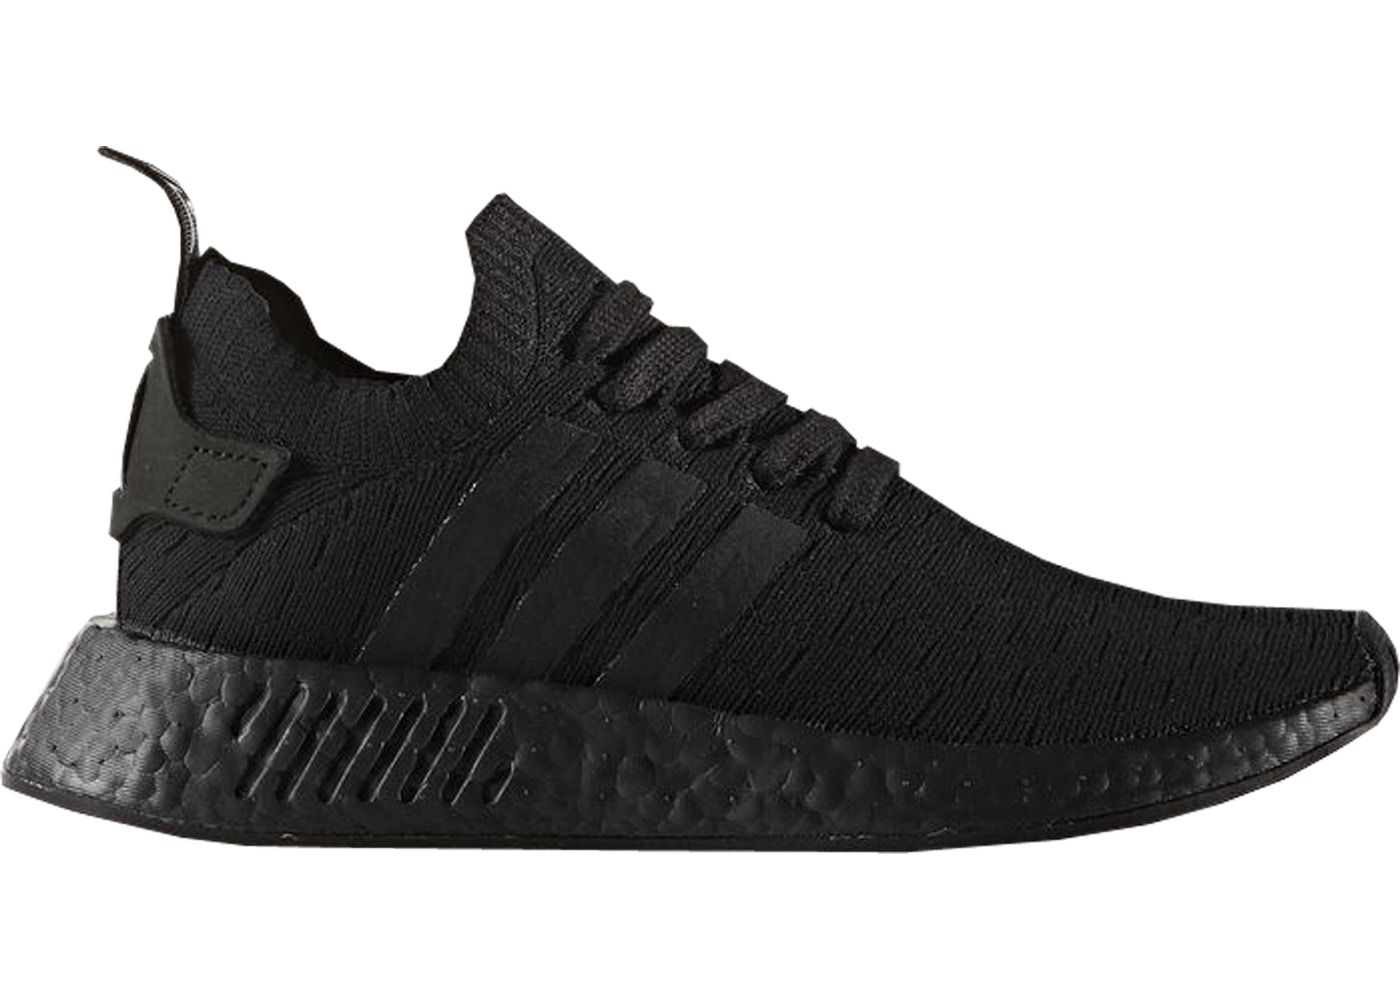 995f0766e UPDATE  The adidas NMD R1 Primeknit